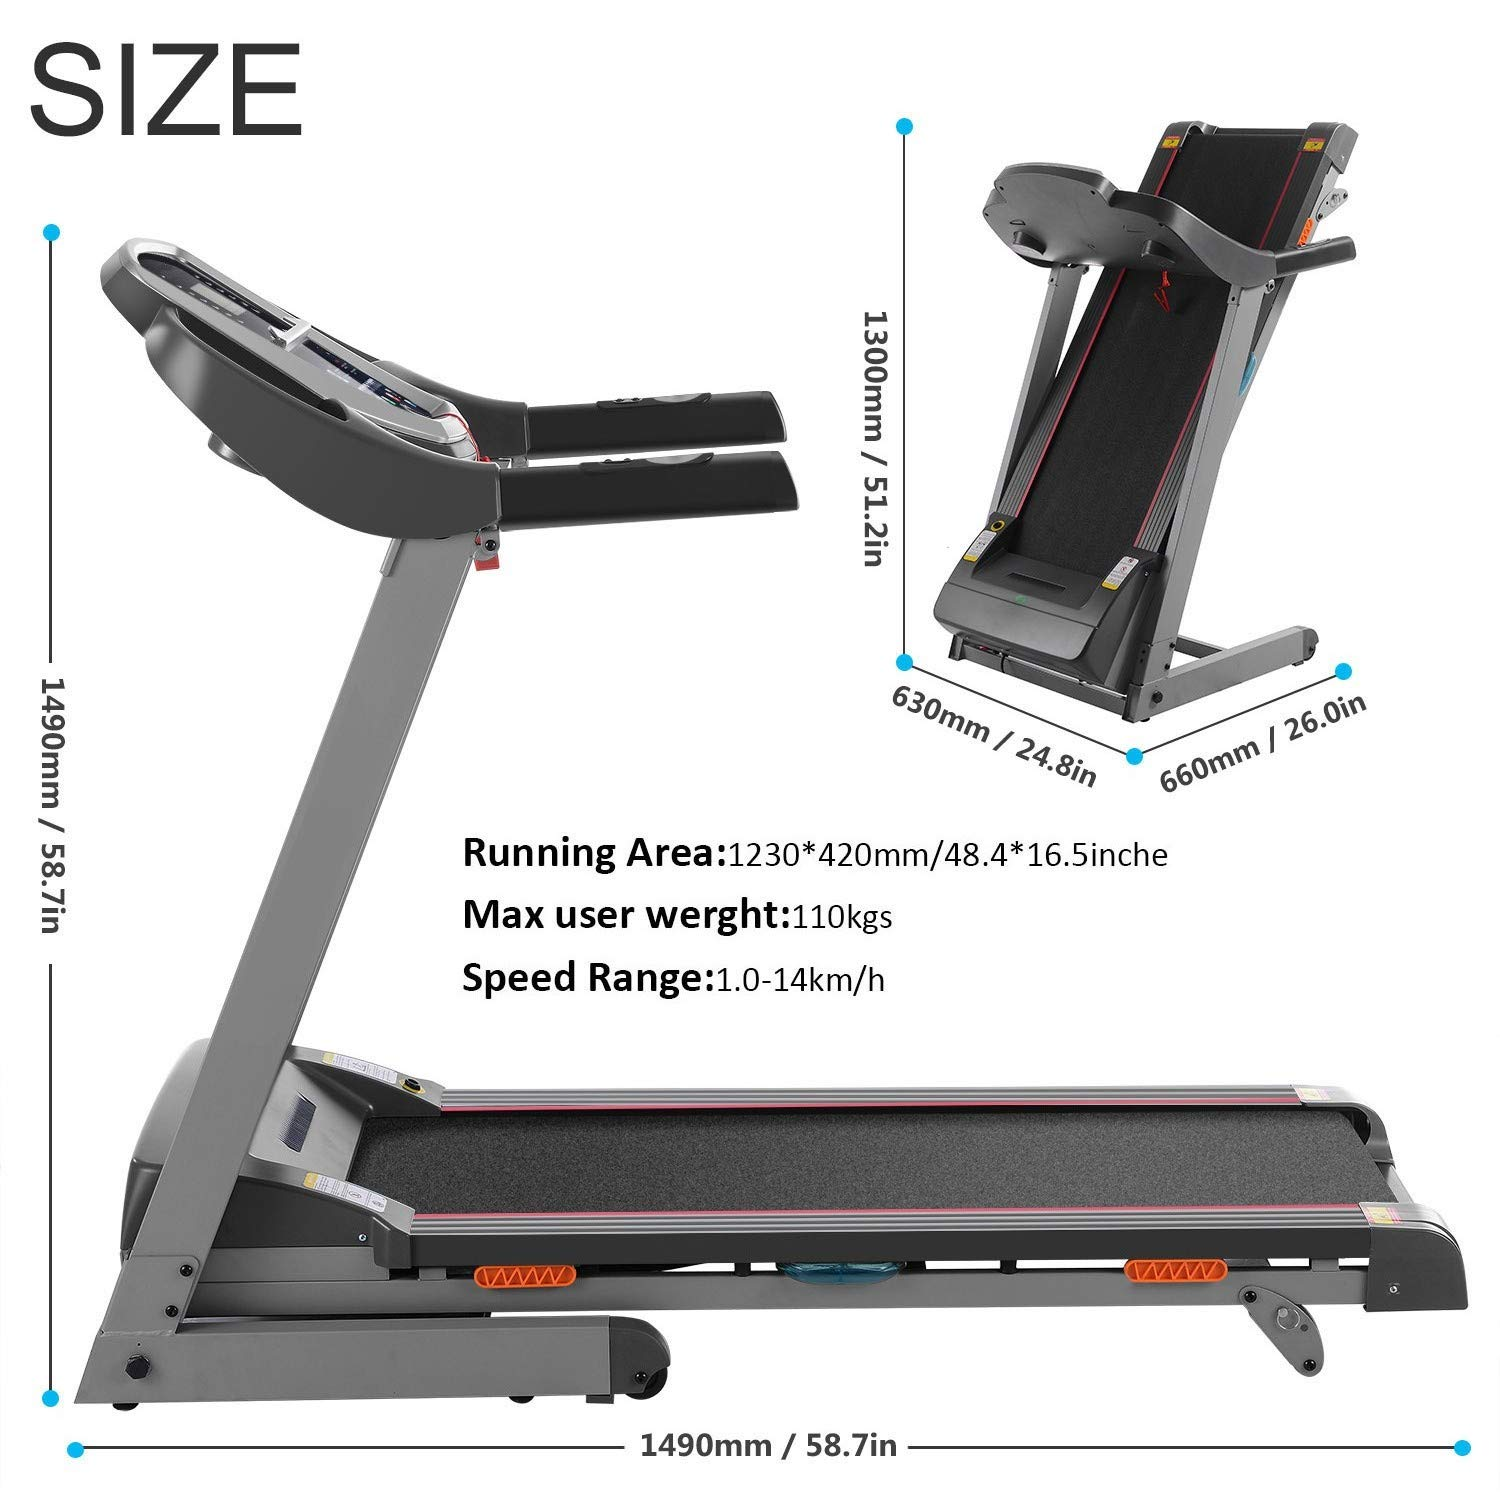 Miageek Fitness Folding Electric Jogging Treadmill with Smartphone APP Control, Walking Running Exercise Machine Incline Trainer Equipment Easy Assembly by Miageek (Image #5)